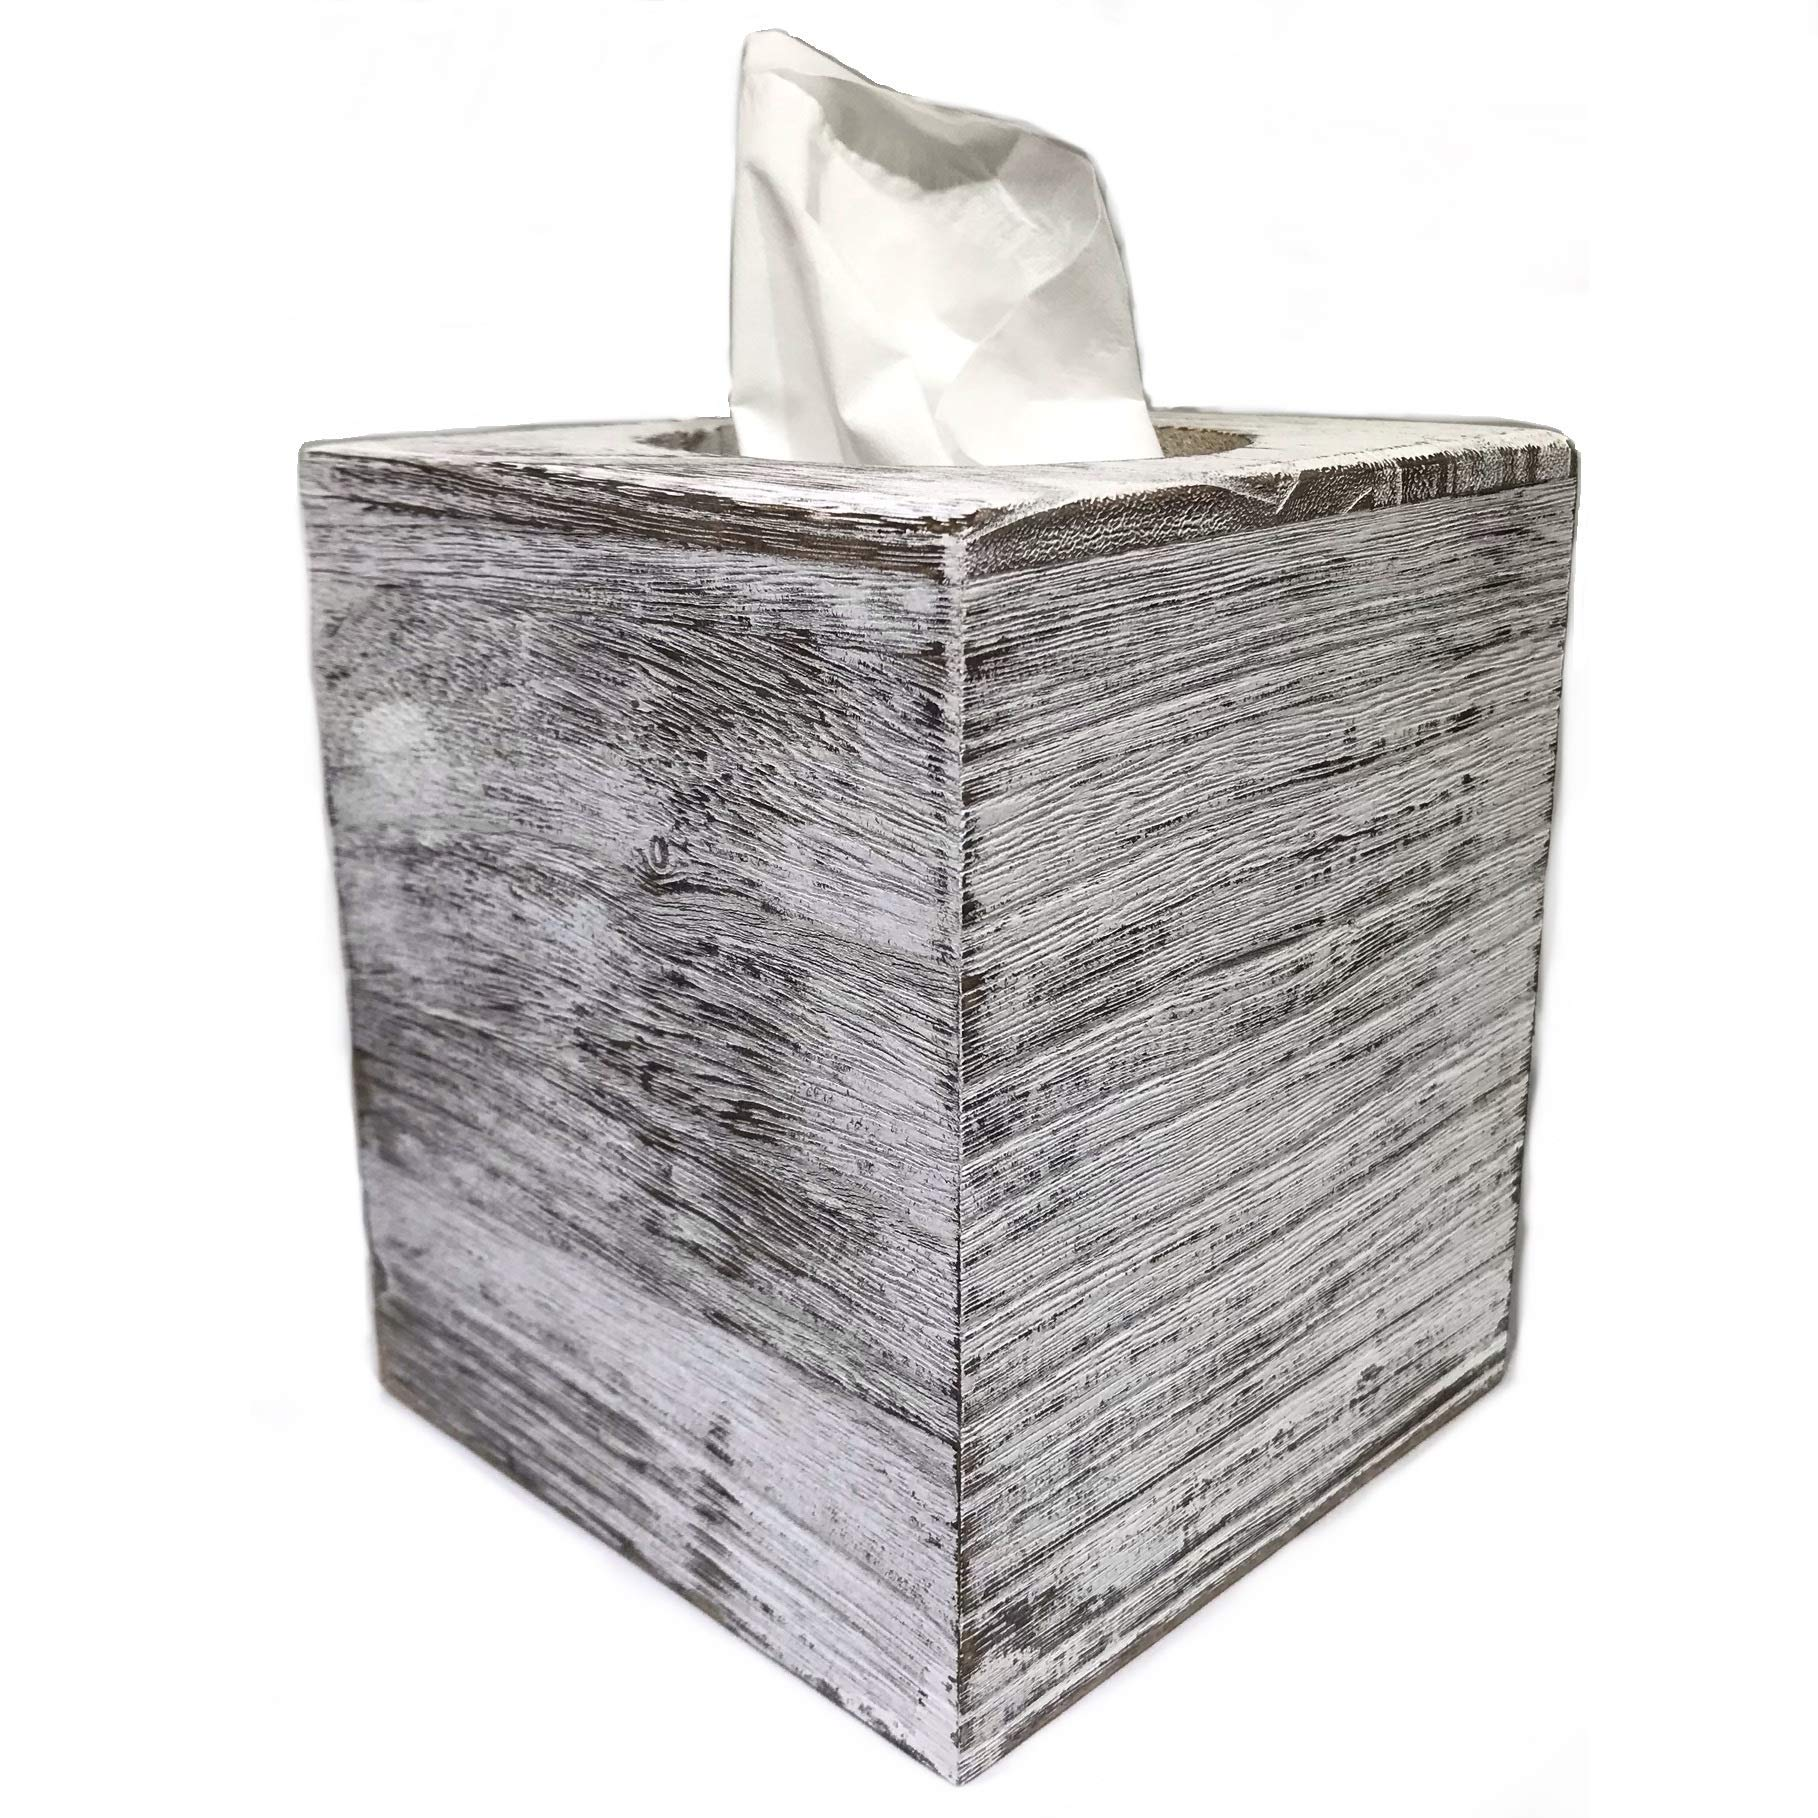 Ahaus Imports - Rustic Wood Tissue Box Cover - Square - Weathered White Barnwood - Slide Out Bottom - Great Gift Idea by Ahaus Imports